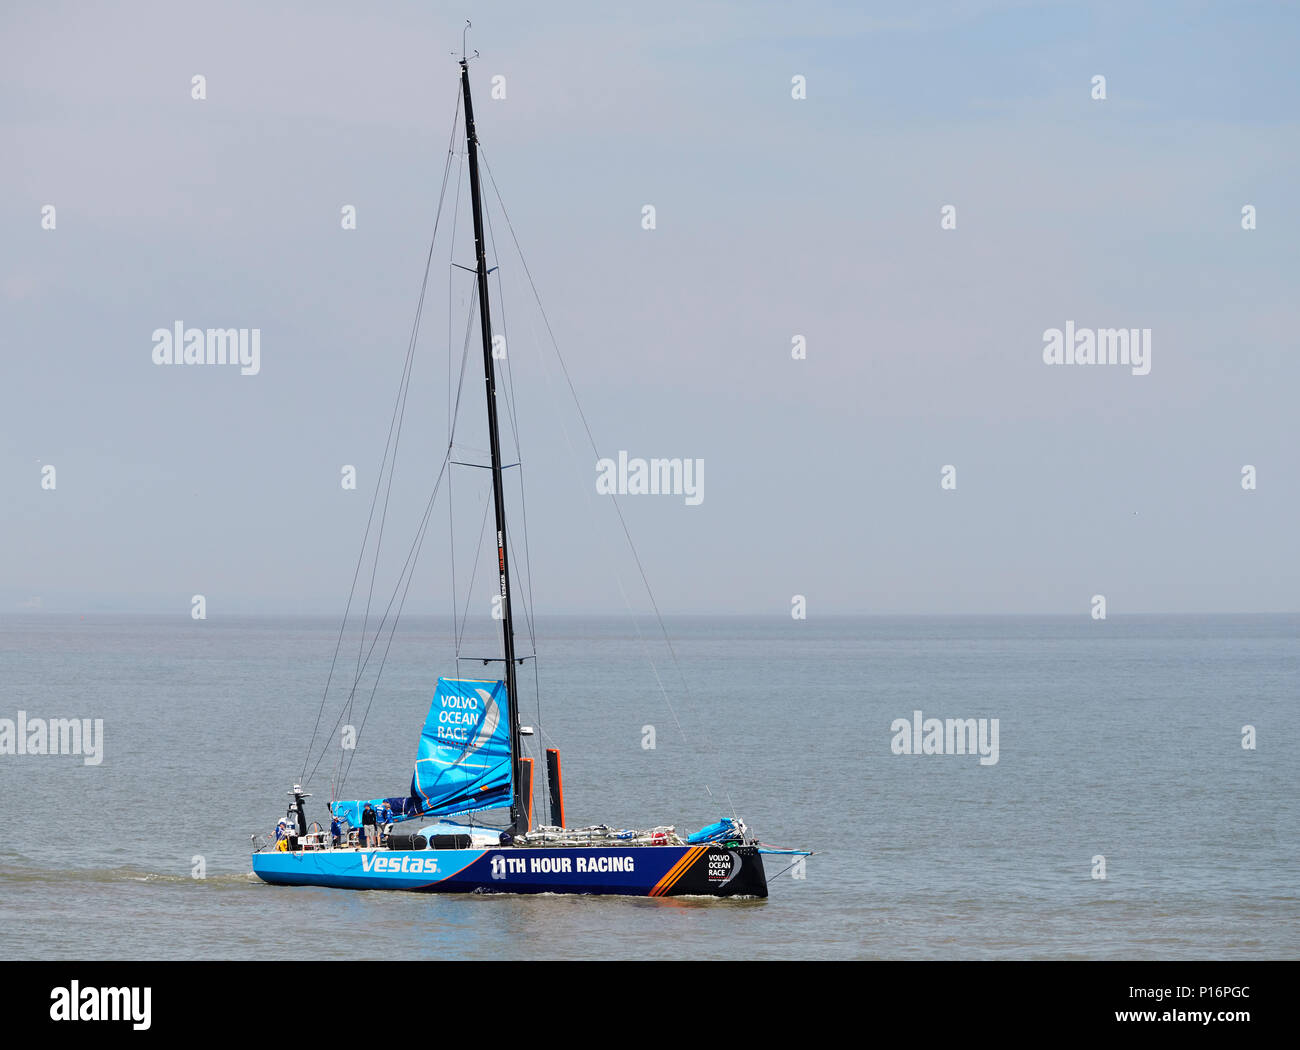 Cardiff Bay, Cardiff, Wales UK. 10th June 2018  Vestas 1ith Hour Racing,  leaves port to prepare for the start of The Volvo Ocean Race  Leg 10 Cardiff to Gothenburg. Credit: Phillip Thomas/Alamy Live News Stock Photo